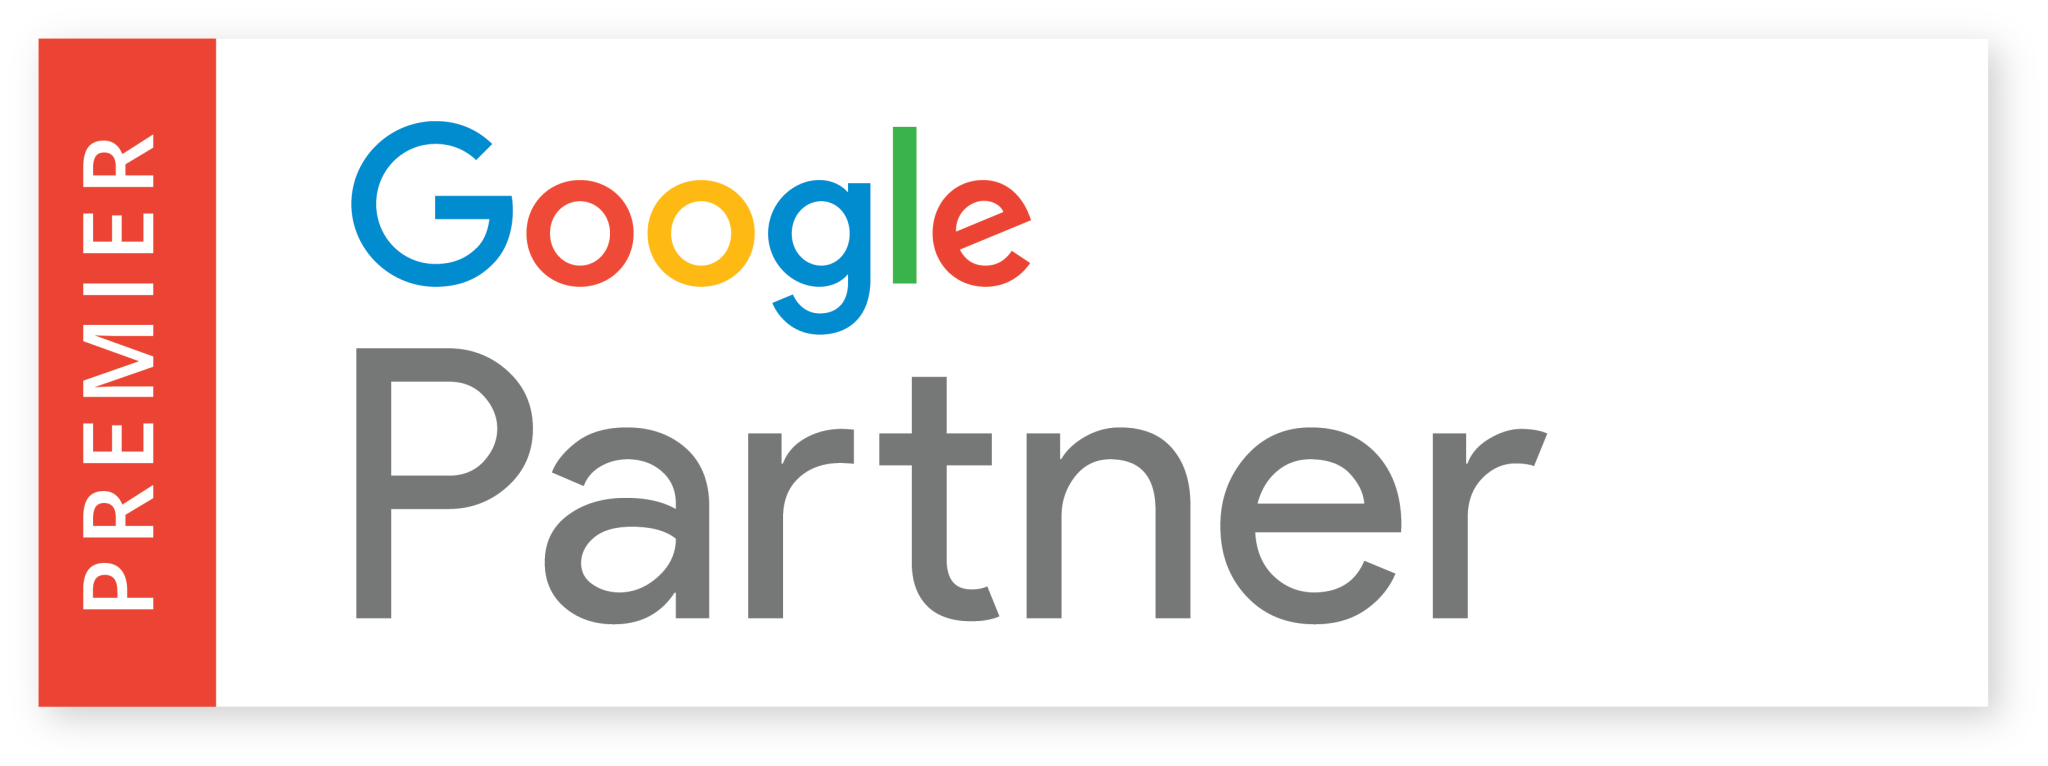 Lexington/Kentucky-based Higher Education Marketing Agency Receives Coveted Distinction from Google